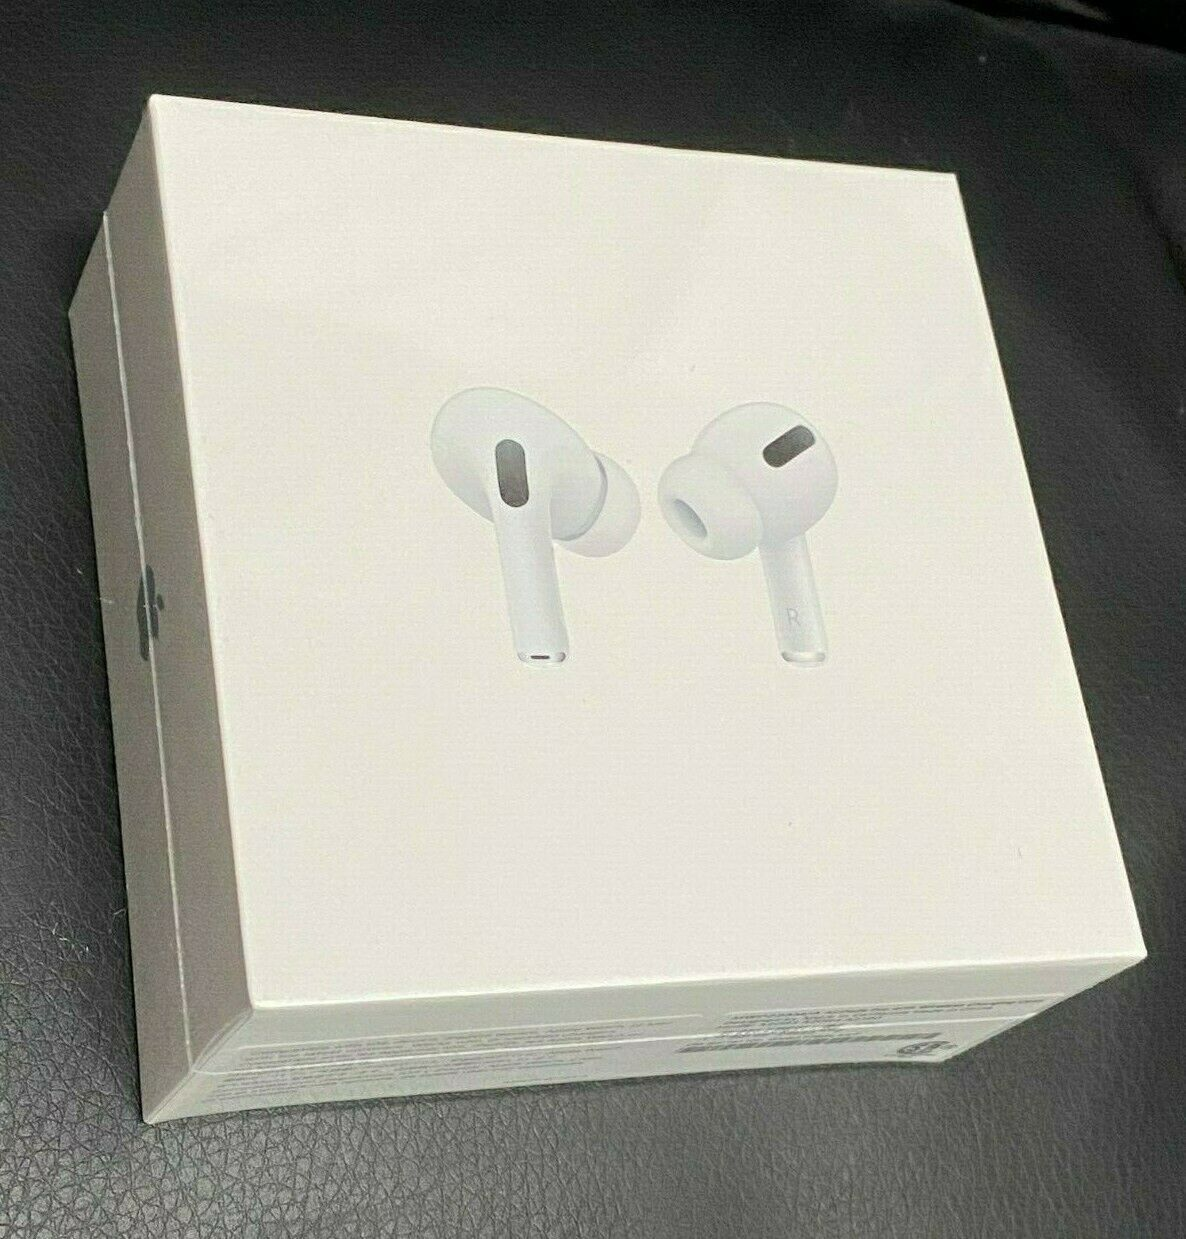 Apple Airpods Pro With Wireless Charging Case Sam S Club Airpods Pro Noise Cancelling In Ear Headphones